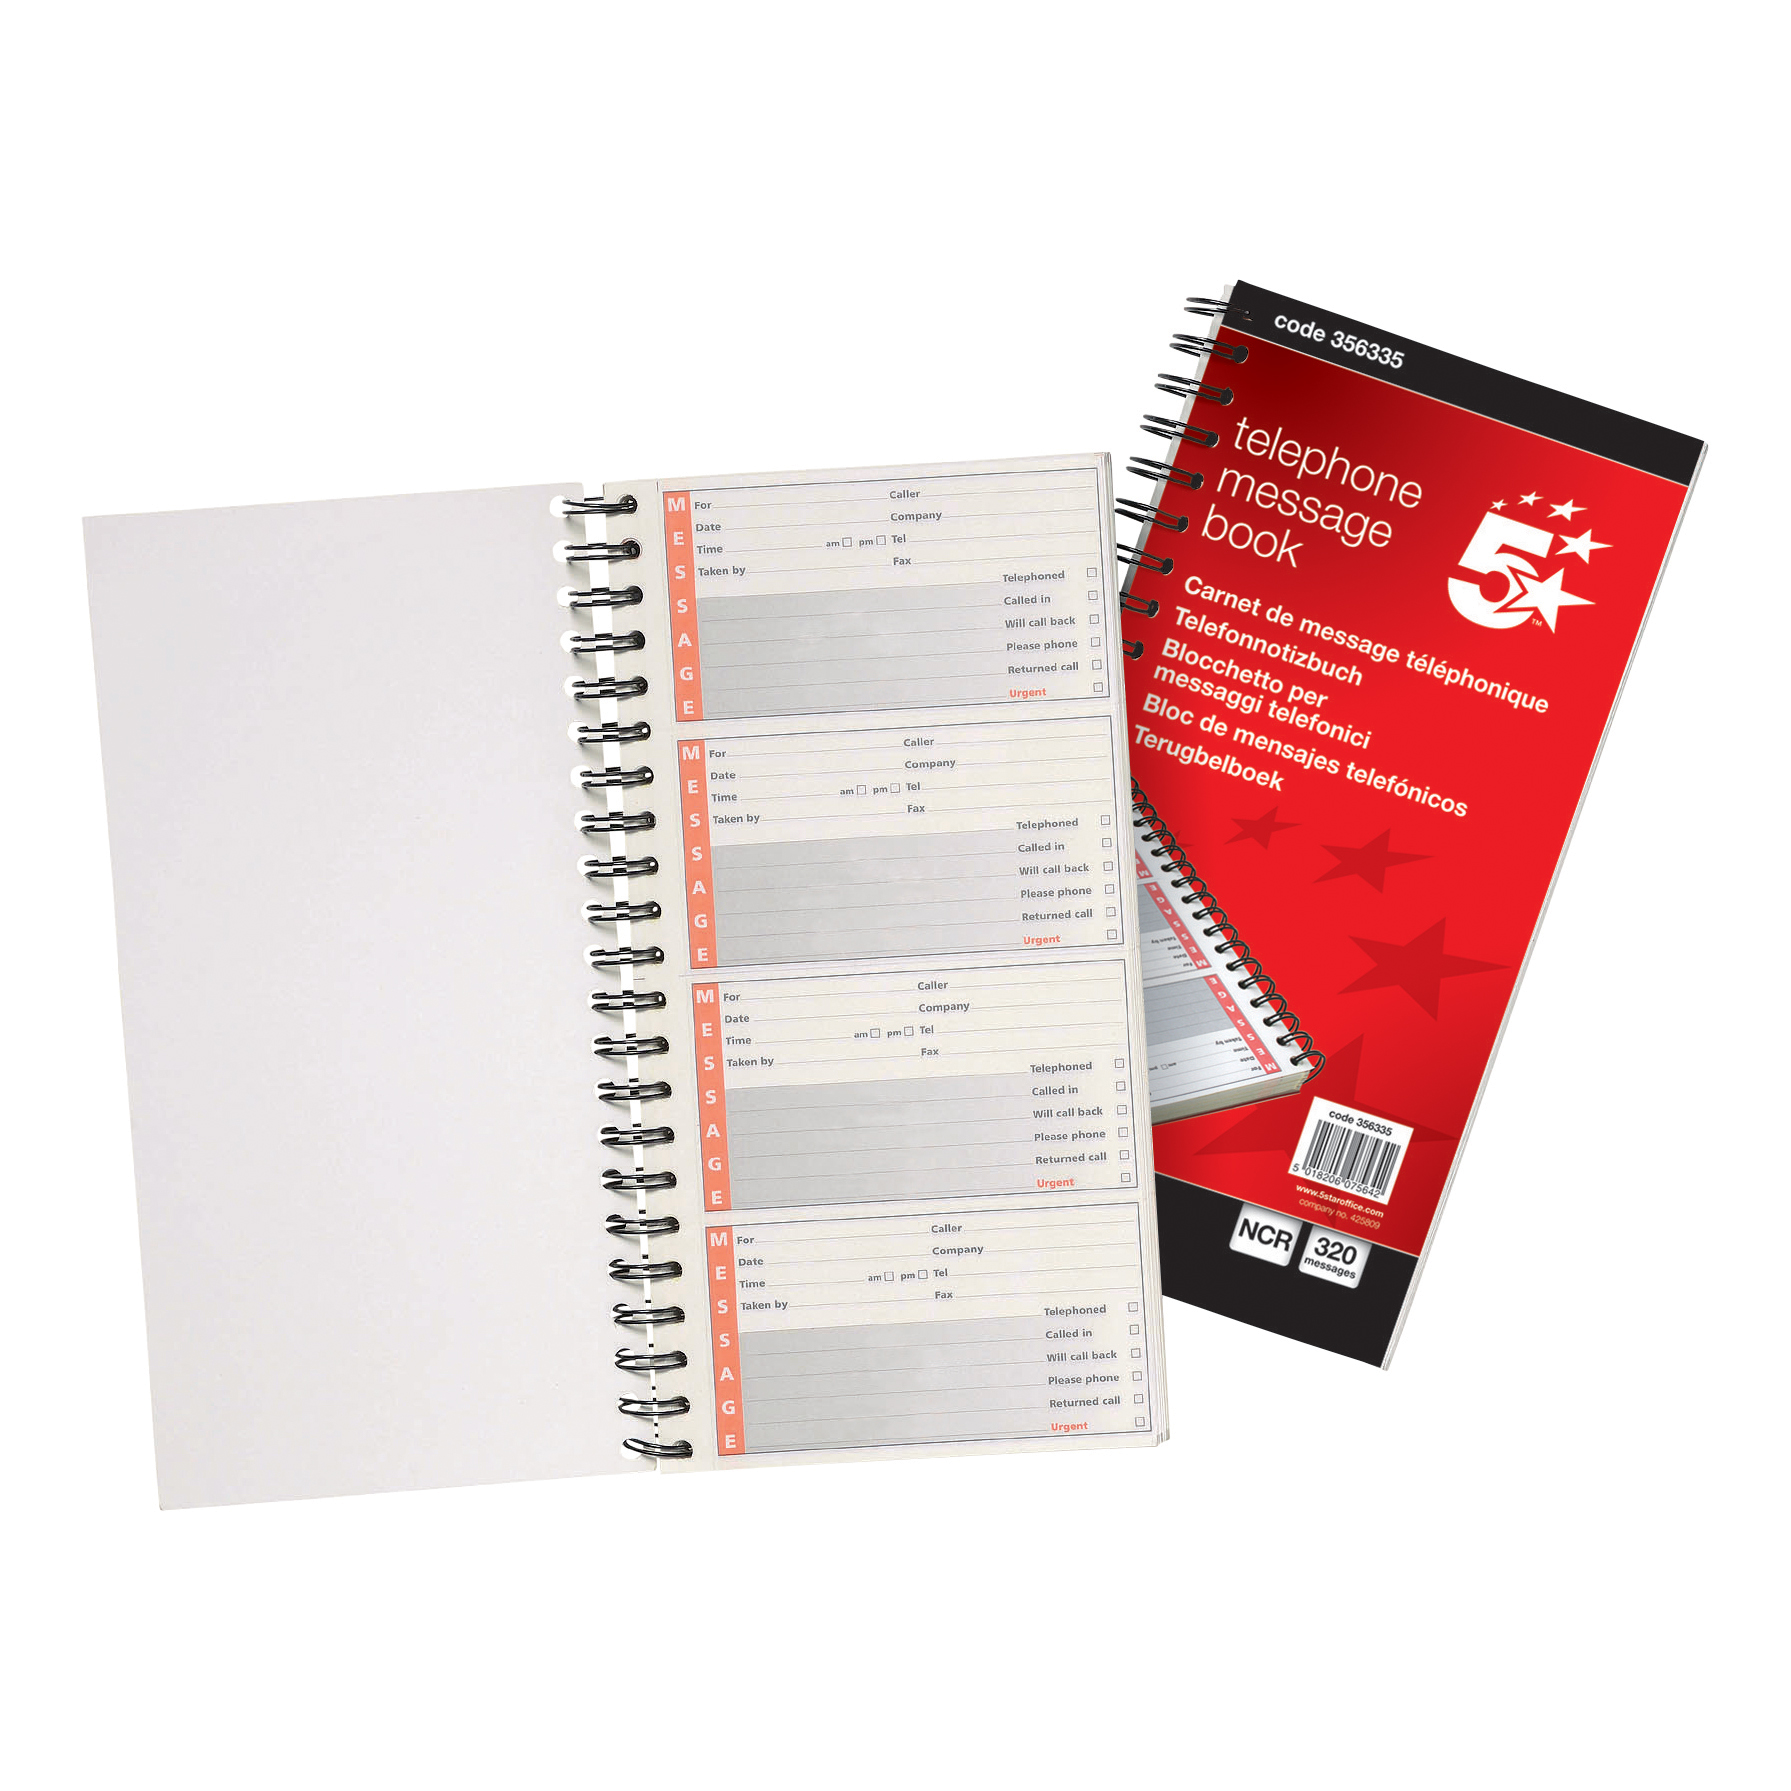 Duplicate 5 Star Office Telephone Message Book Wirebound Carbonless 320 Notes 80 Pages 275x150mm